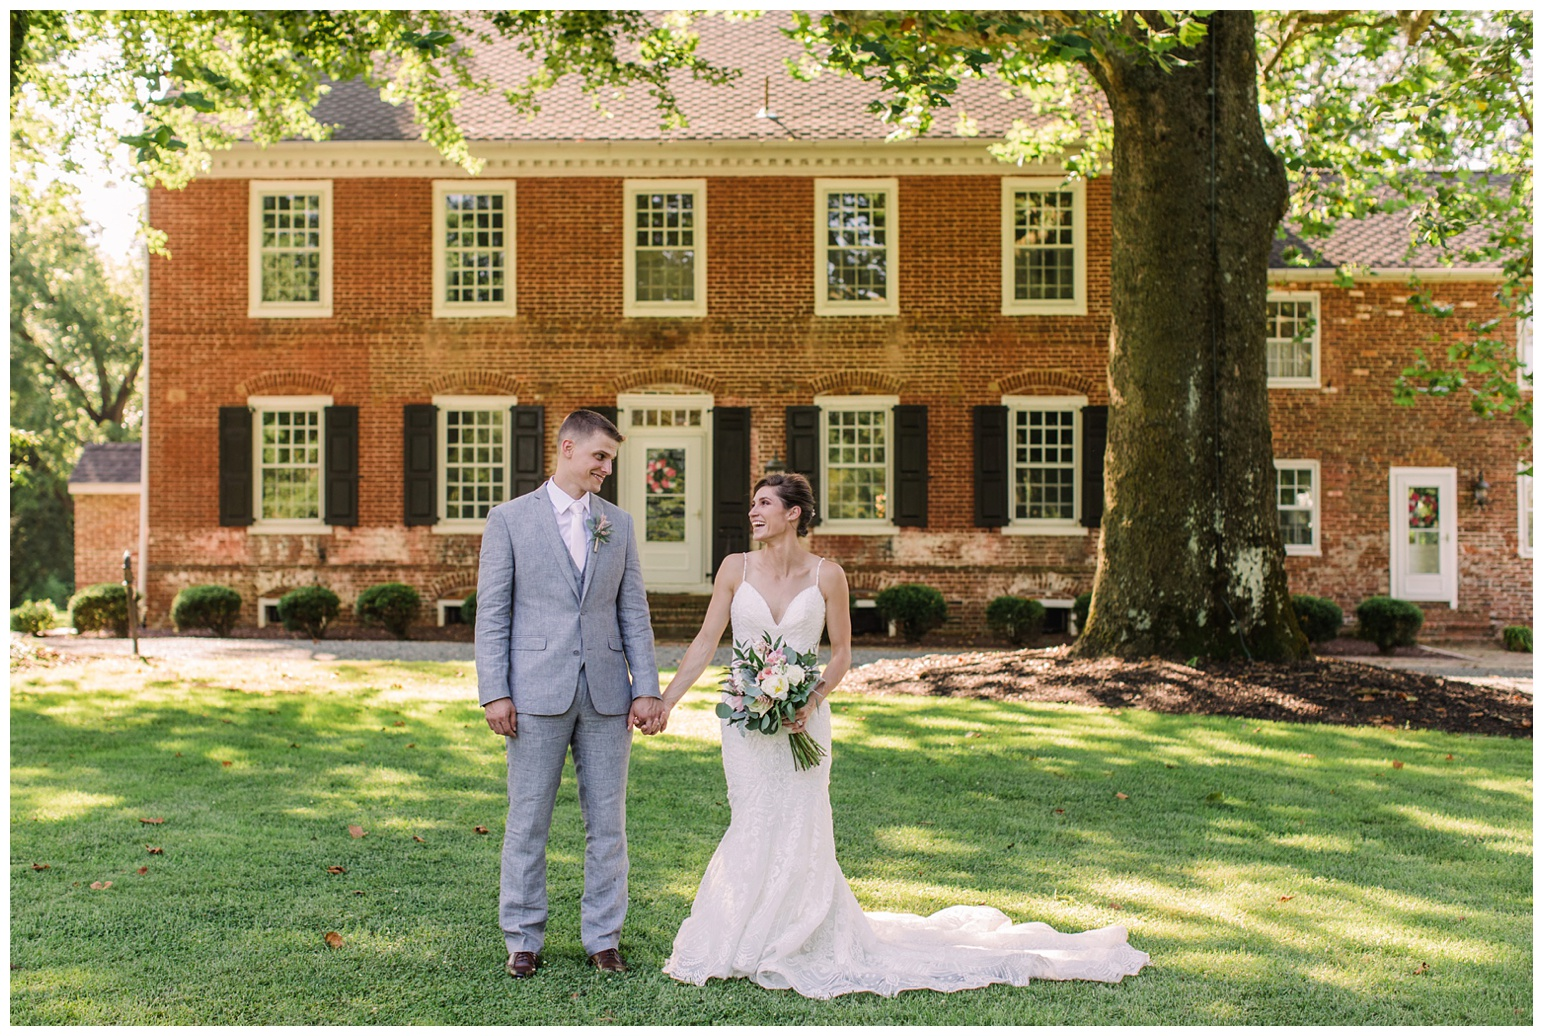 worsell manor wedding in the summer - warwick md - now featured on My Eastern Shore Wedding - coastal - sea - nautical - eastern shore - inspired wedding ideas and inspo - photo of bride and groom outdoors in front of brick manor style building